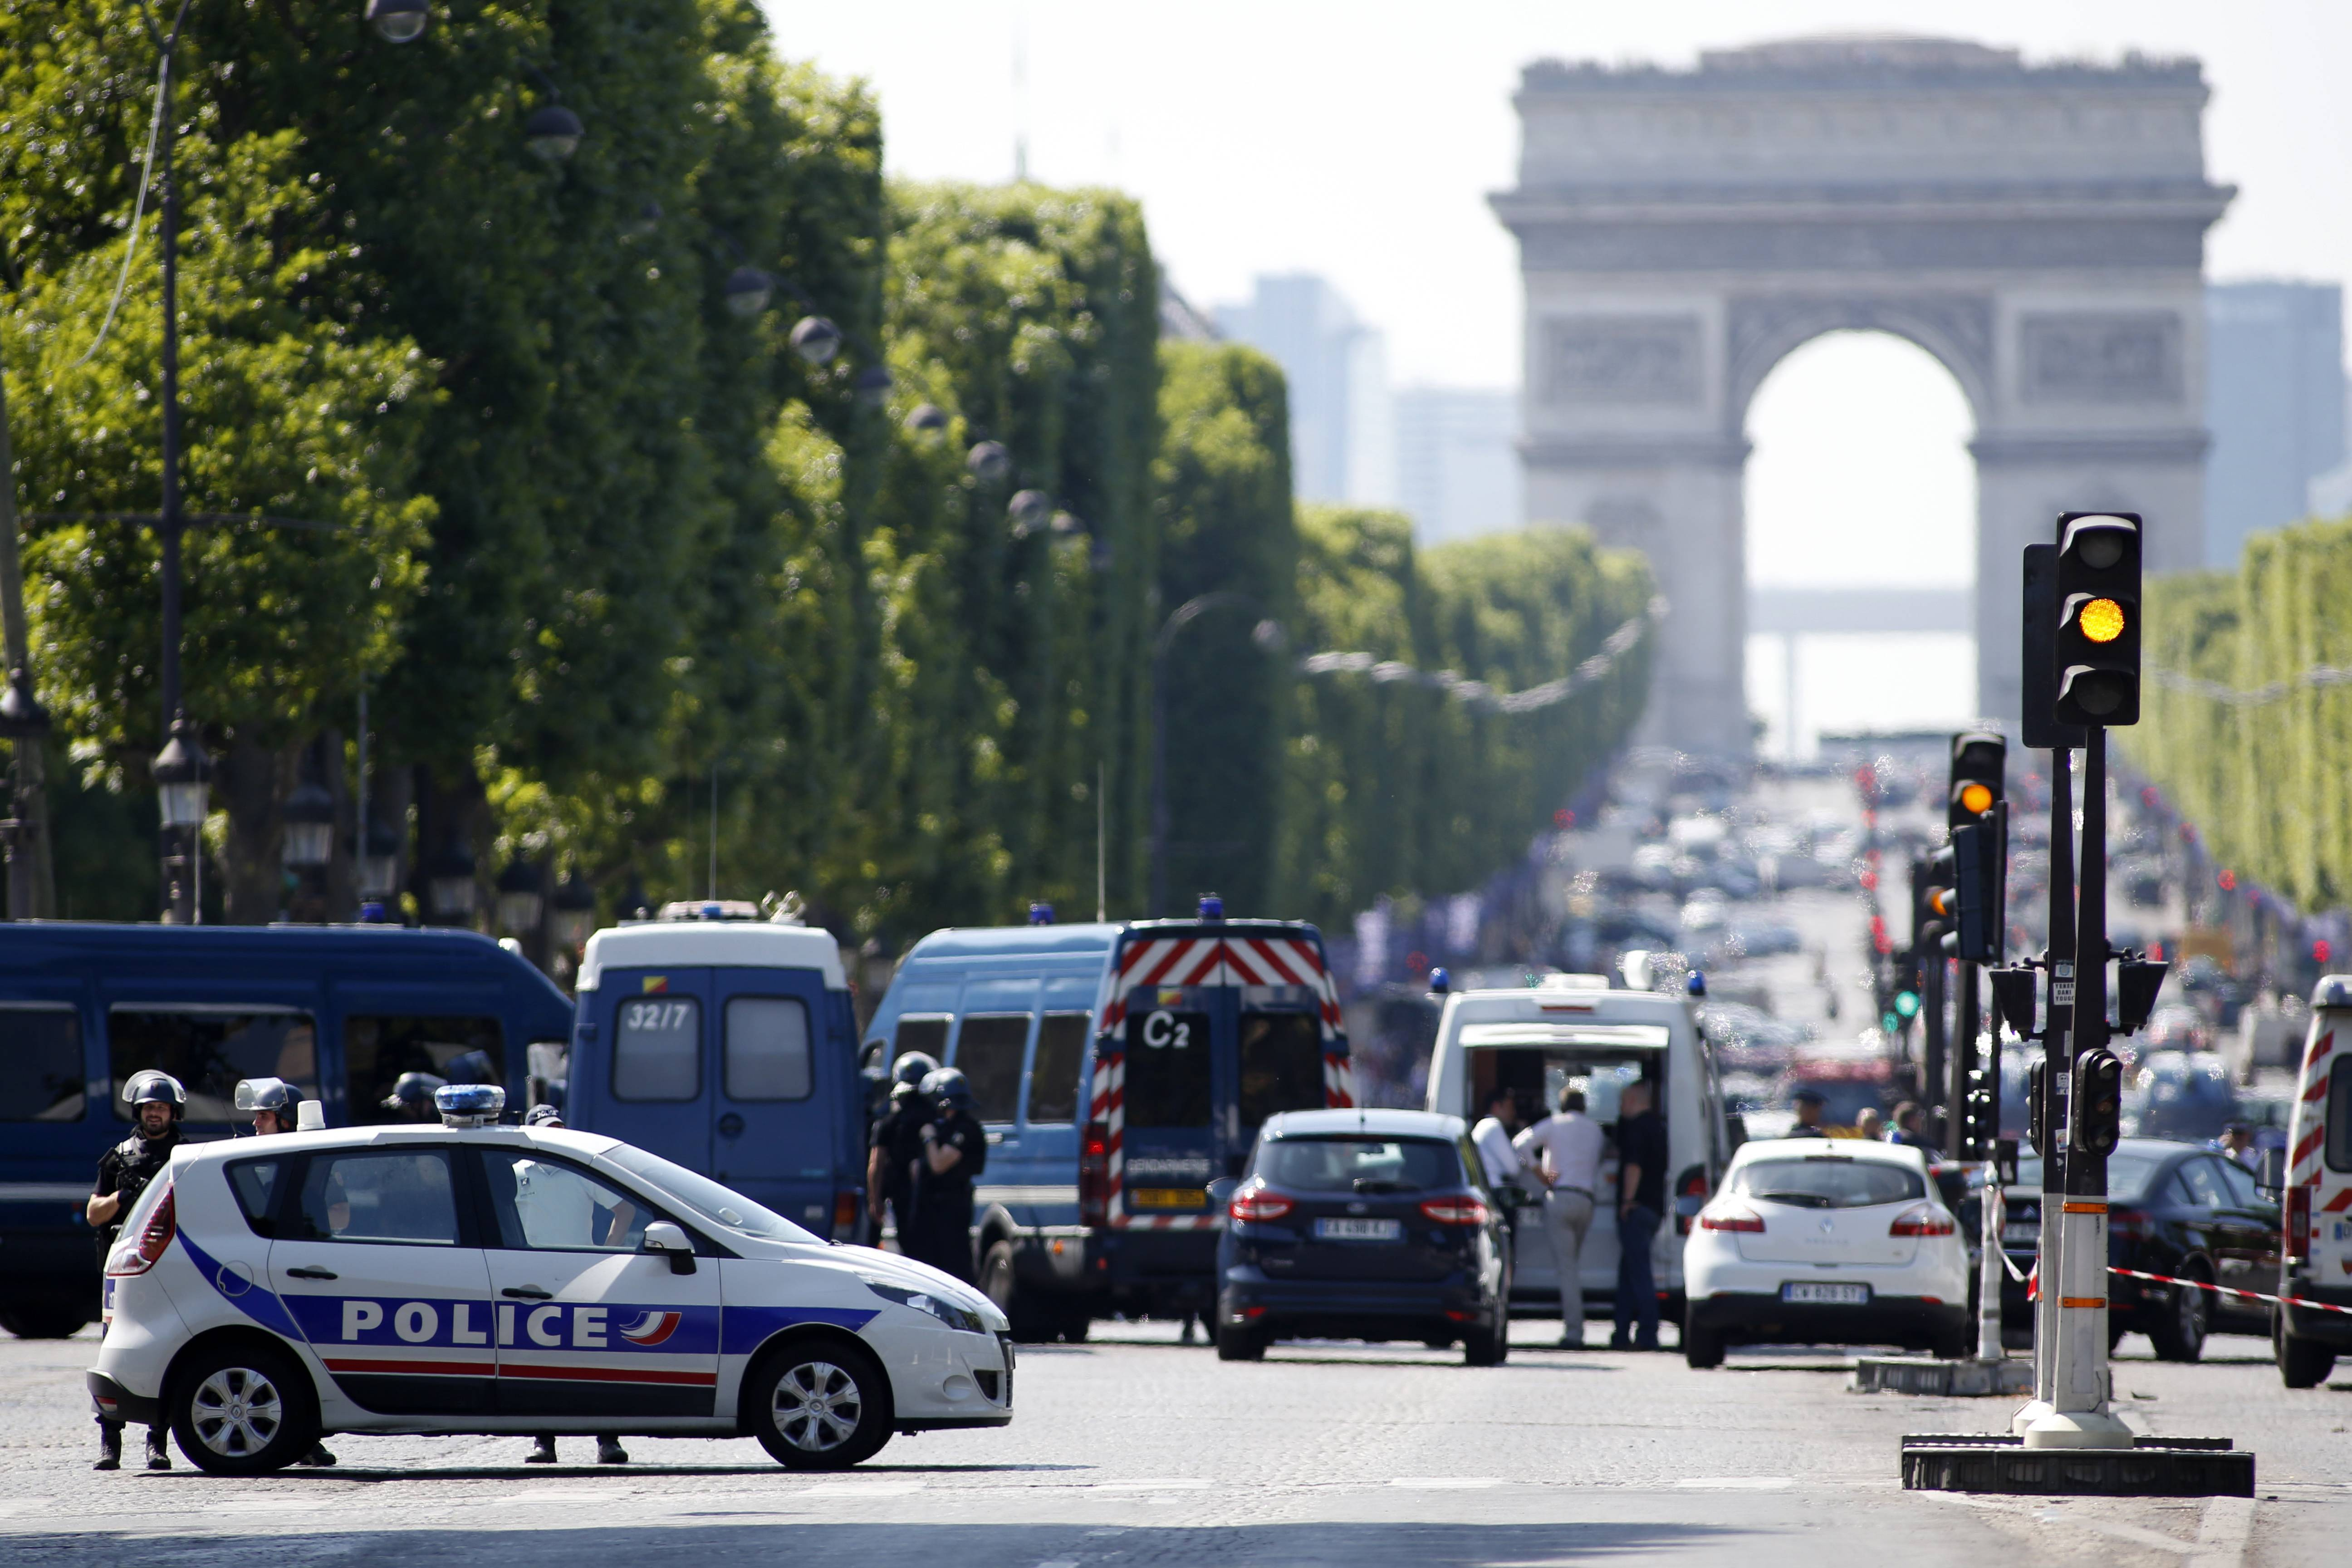 Police forces secure the area on the Champs Elysées in Paris, Monday. A driver rammed his car into a police vehicle in the Champs-Élysées shopping district Monday, prompting a fiery explosion, and was likely killed in the incident, authorities said. France's anti-terrorism prosecutor opened an investigation.